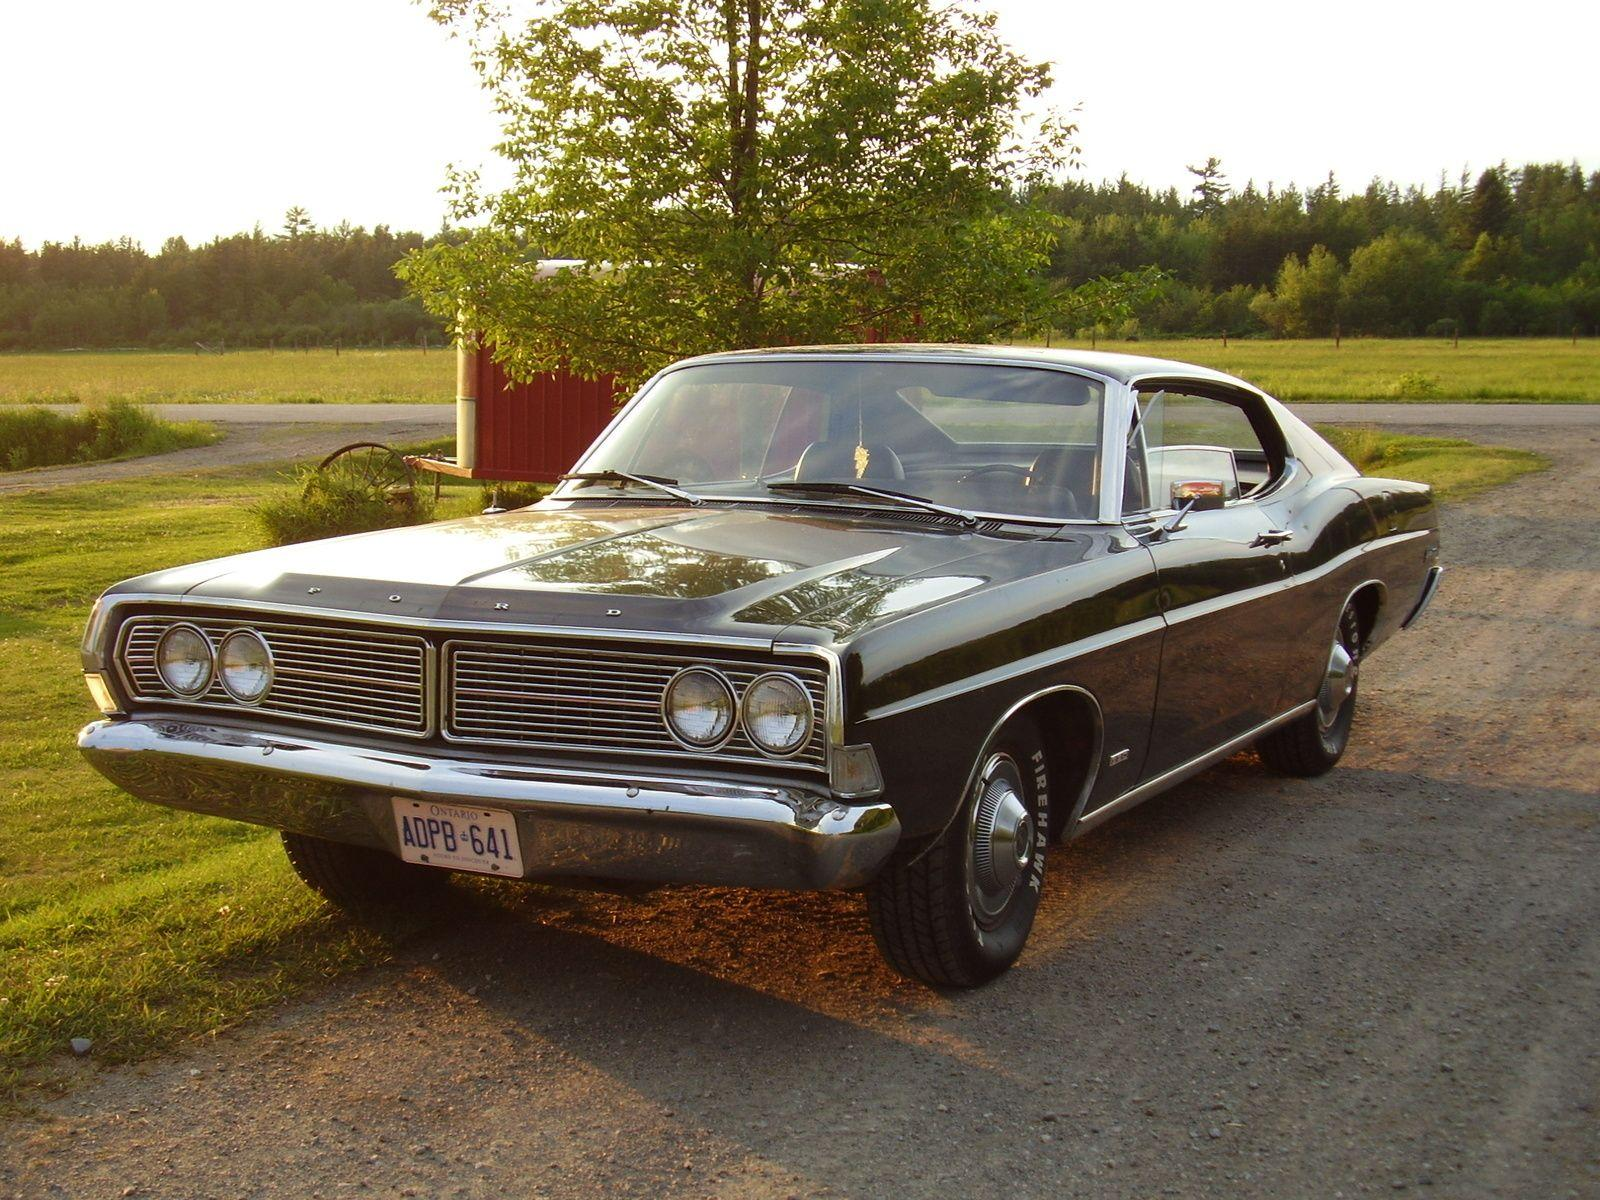 1968 Ford Galaxie - Overview - CarGurus